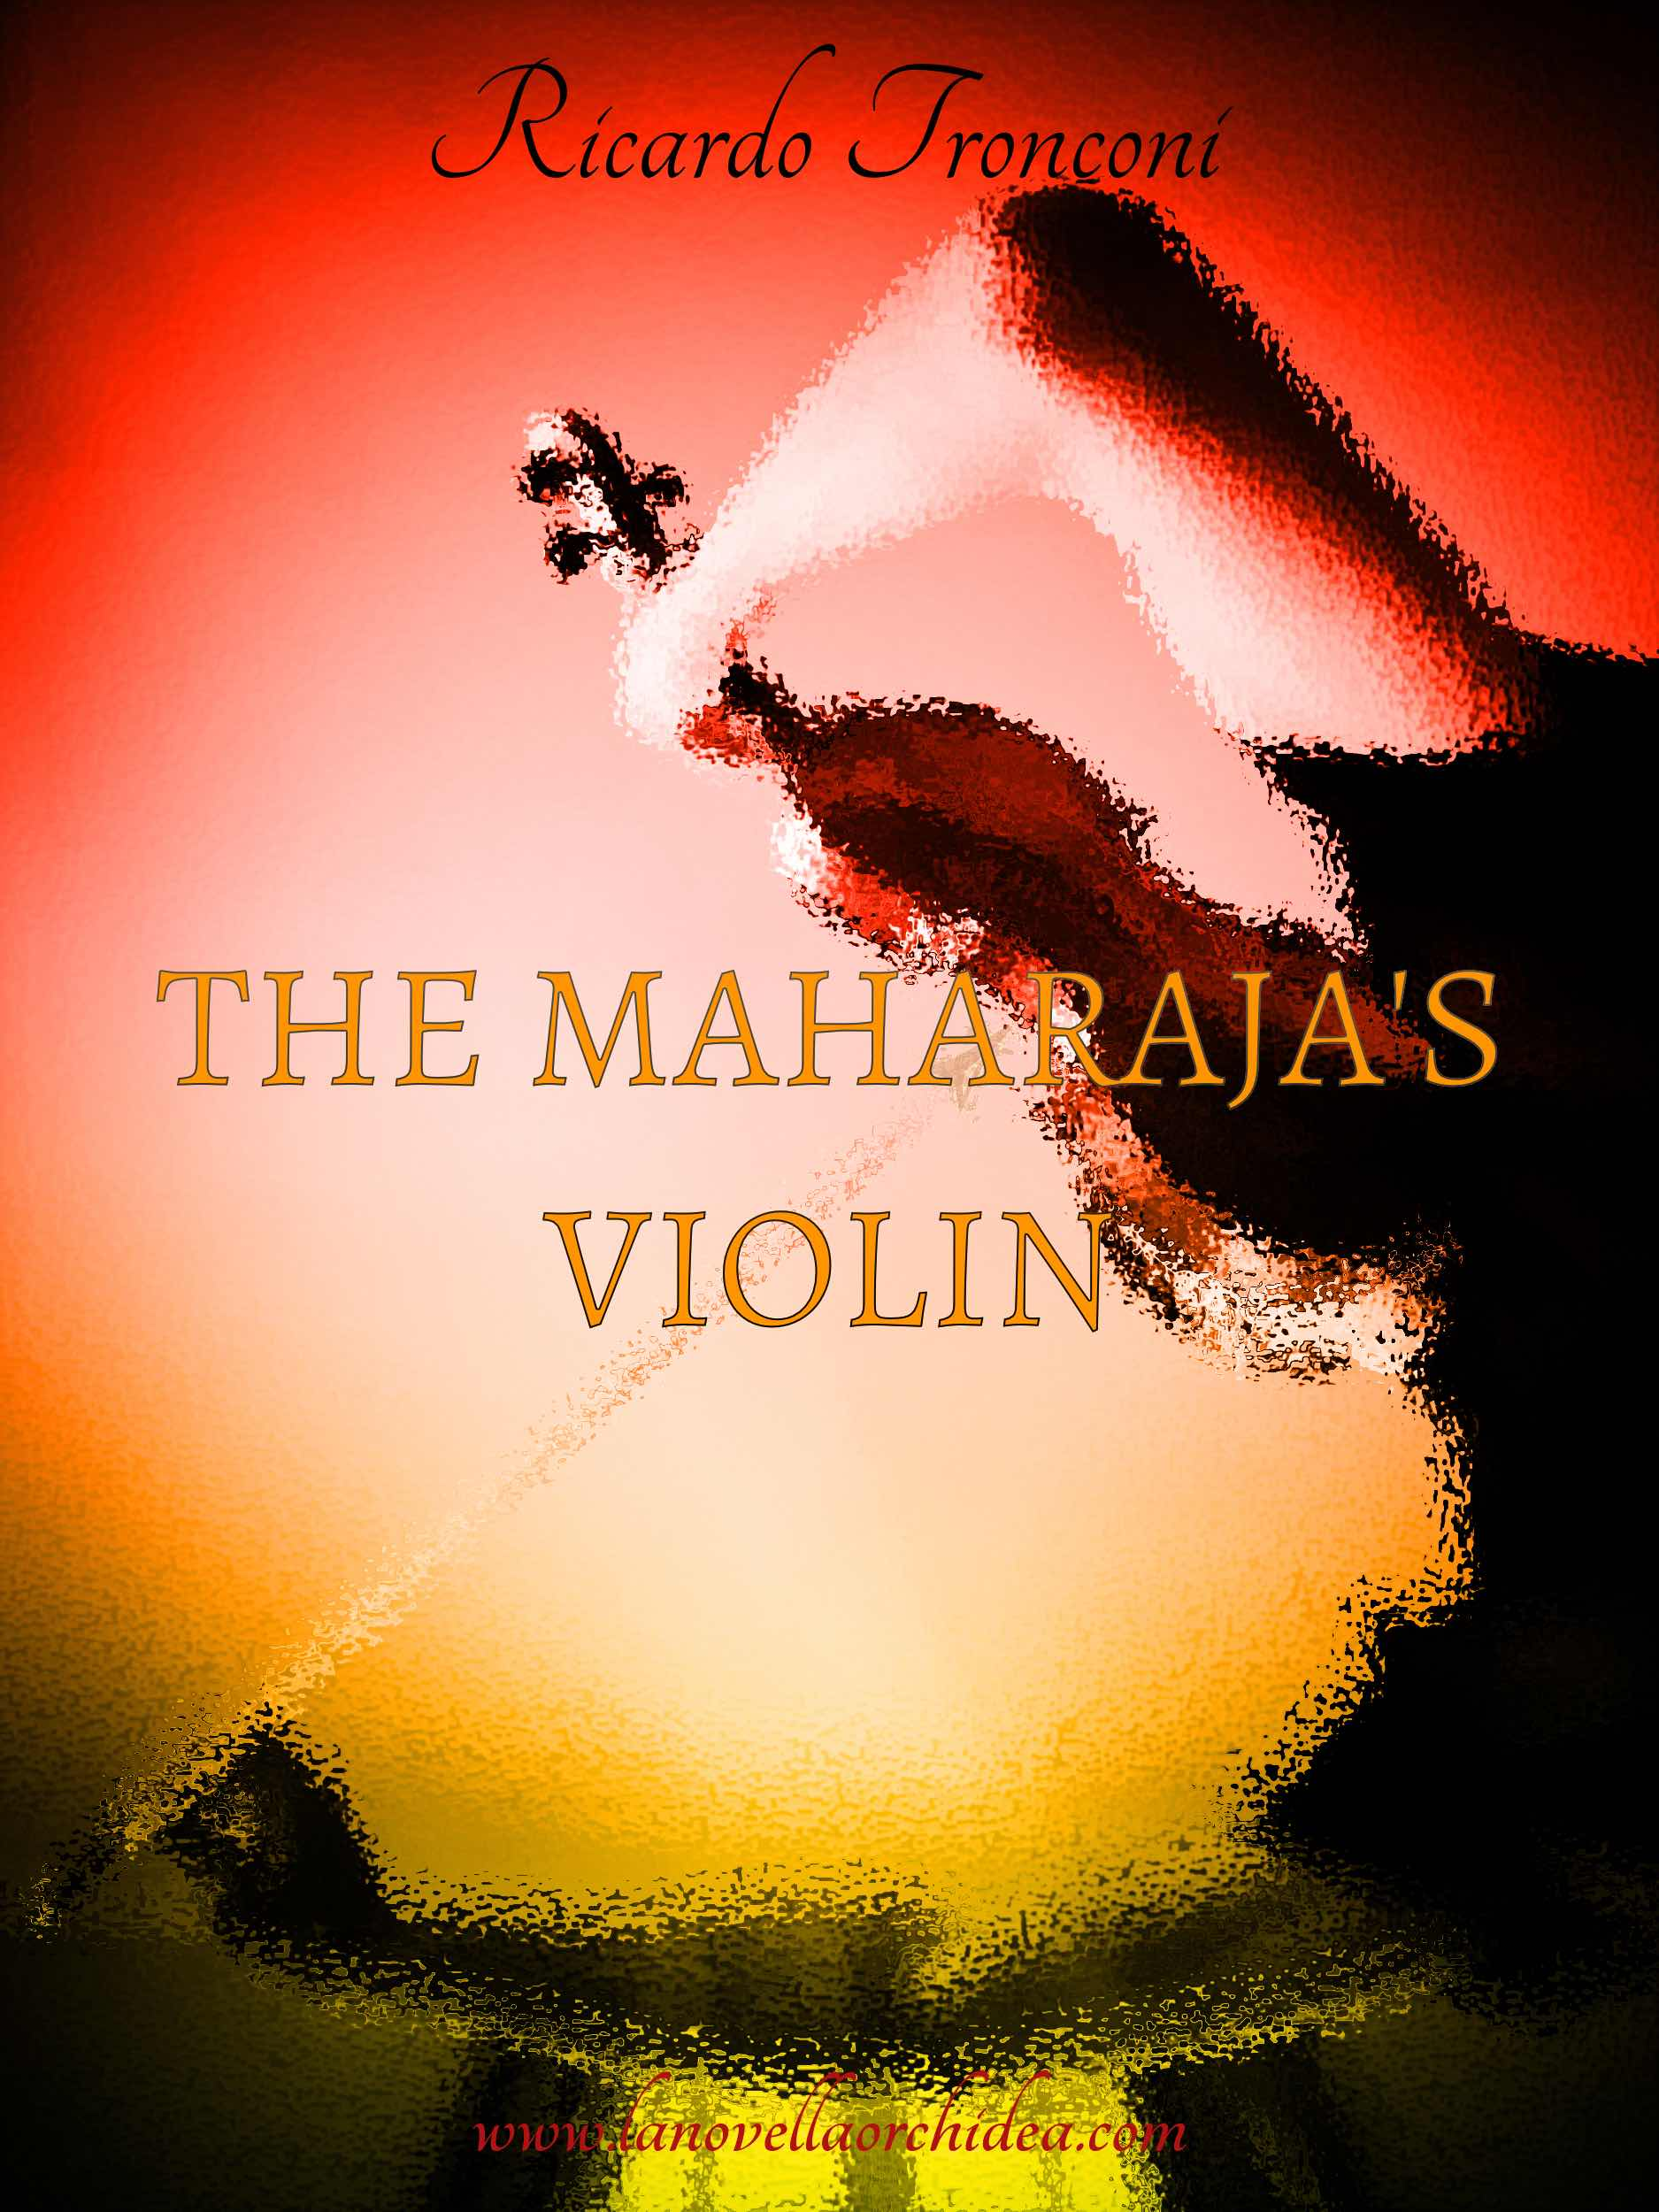 The maharaja's violin